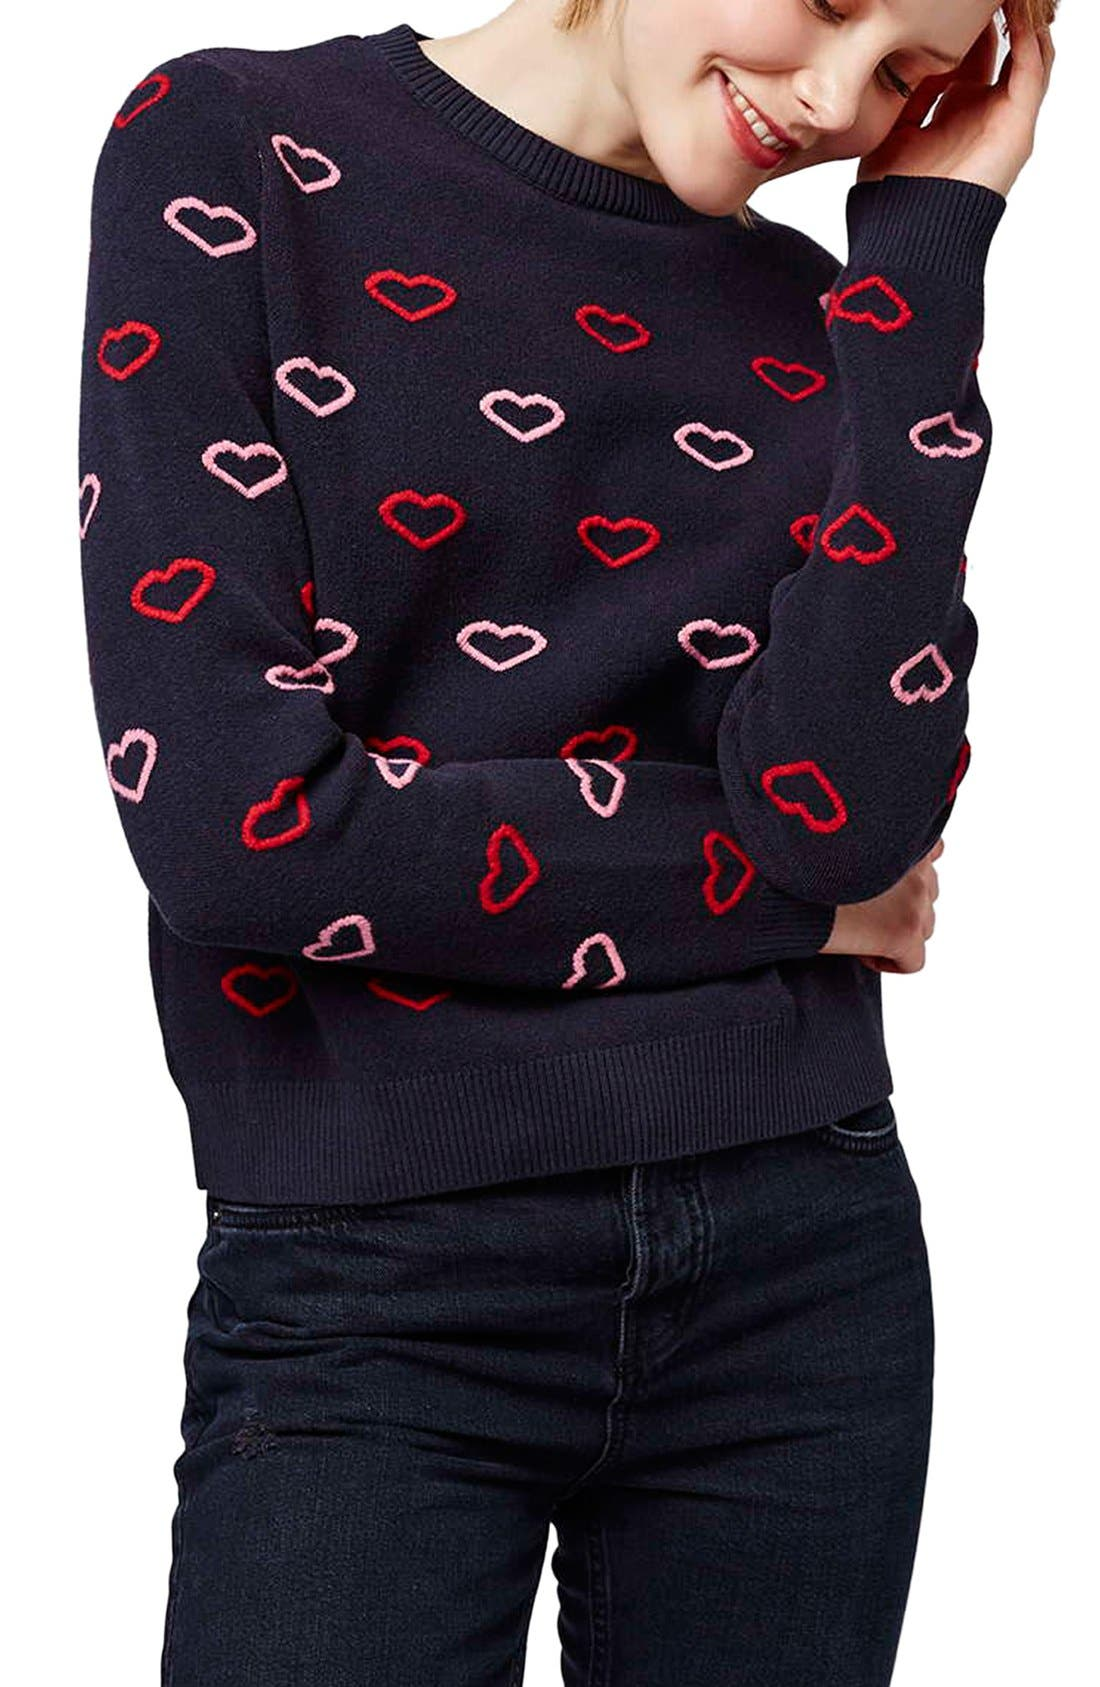 Alternate Image 1 Selected - Topshop Embroidered Heart Sweater